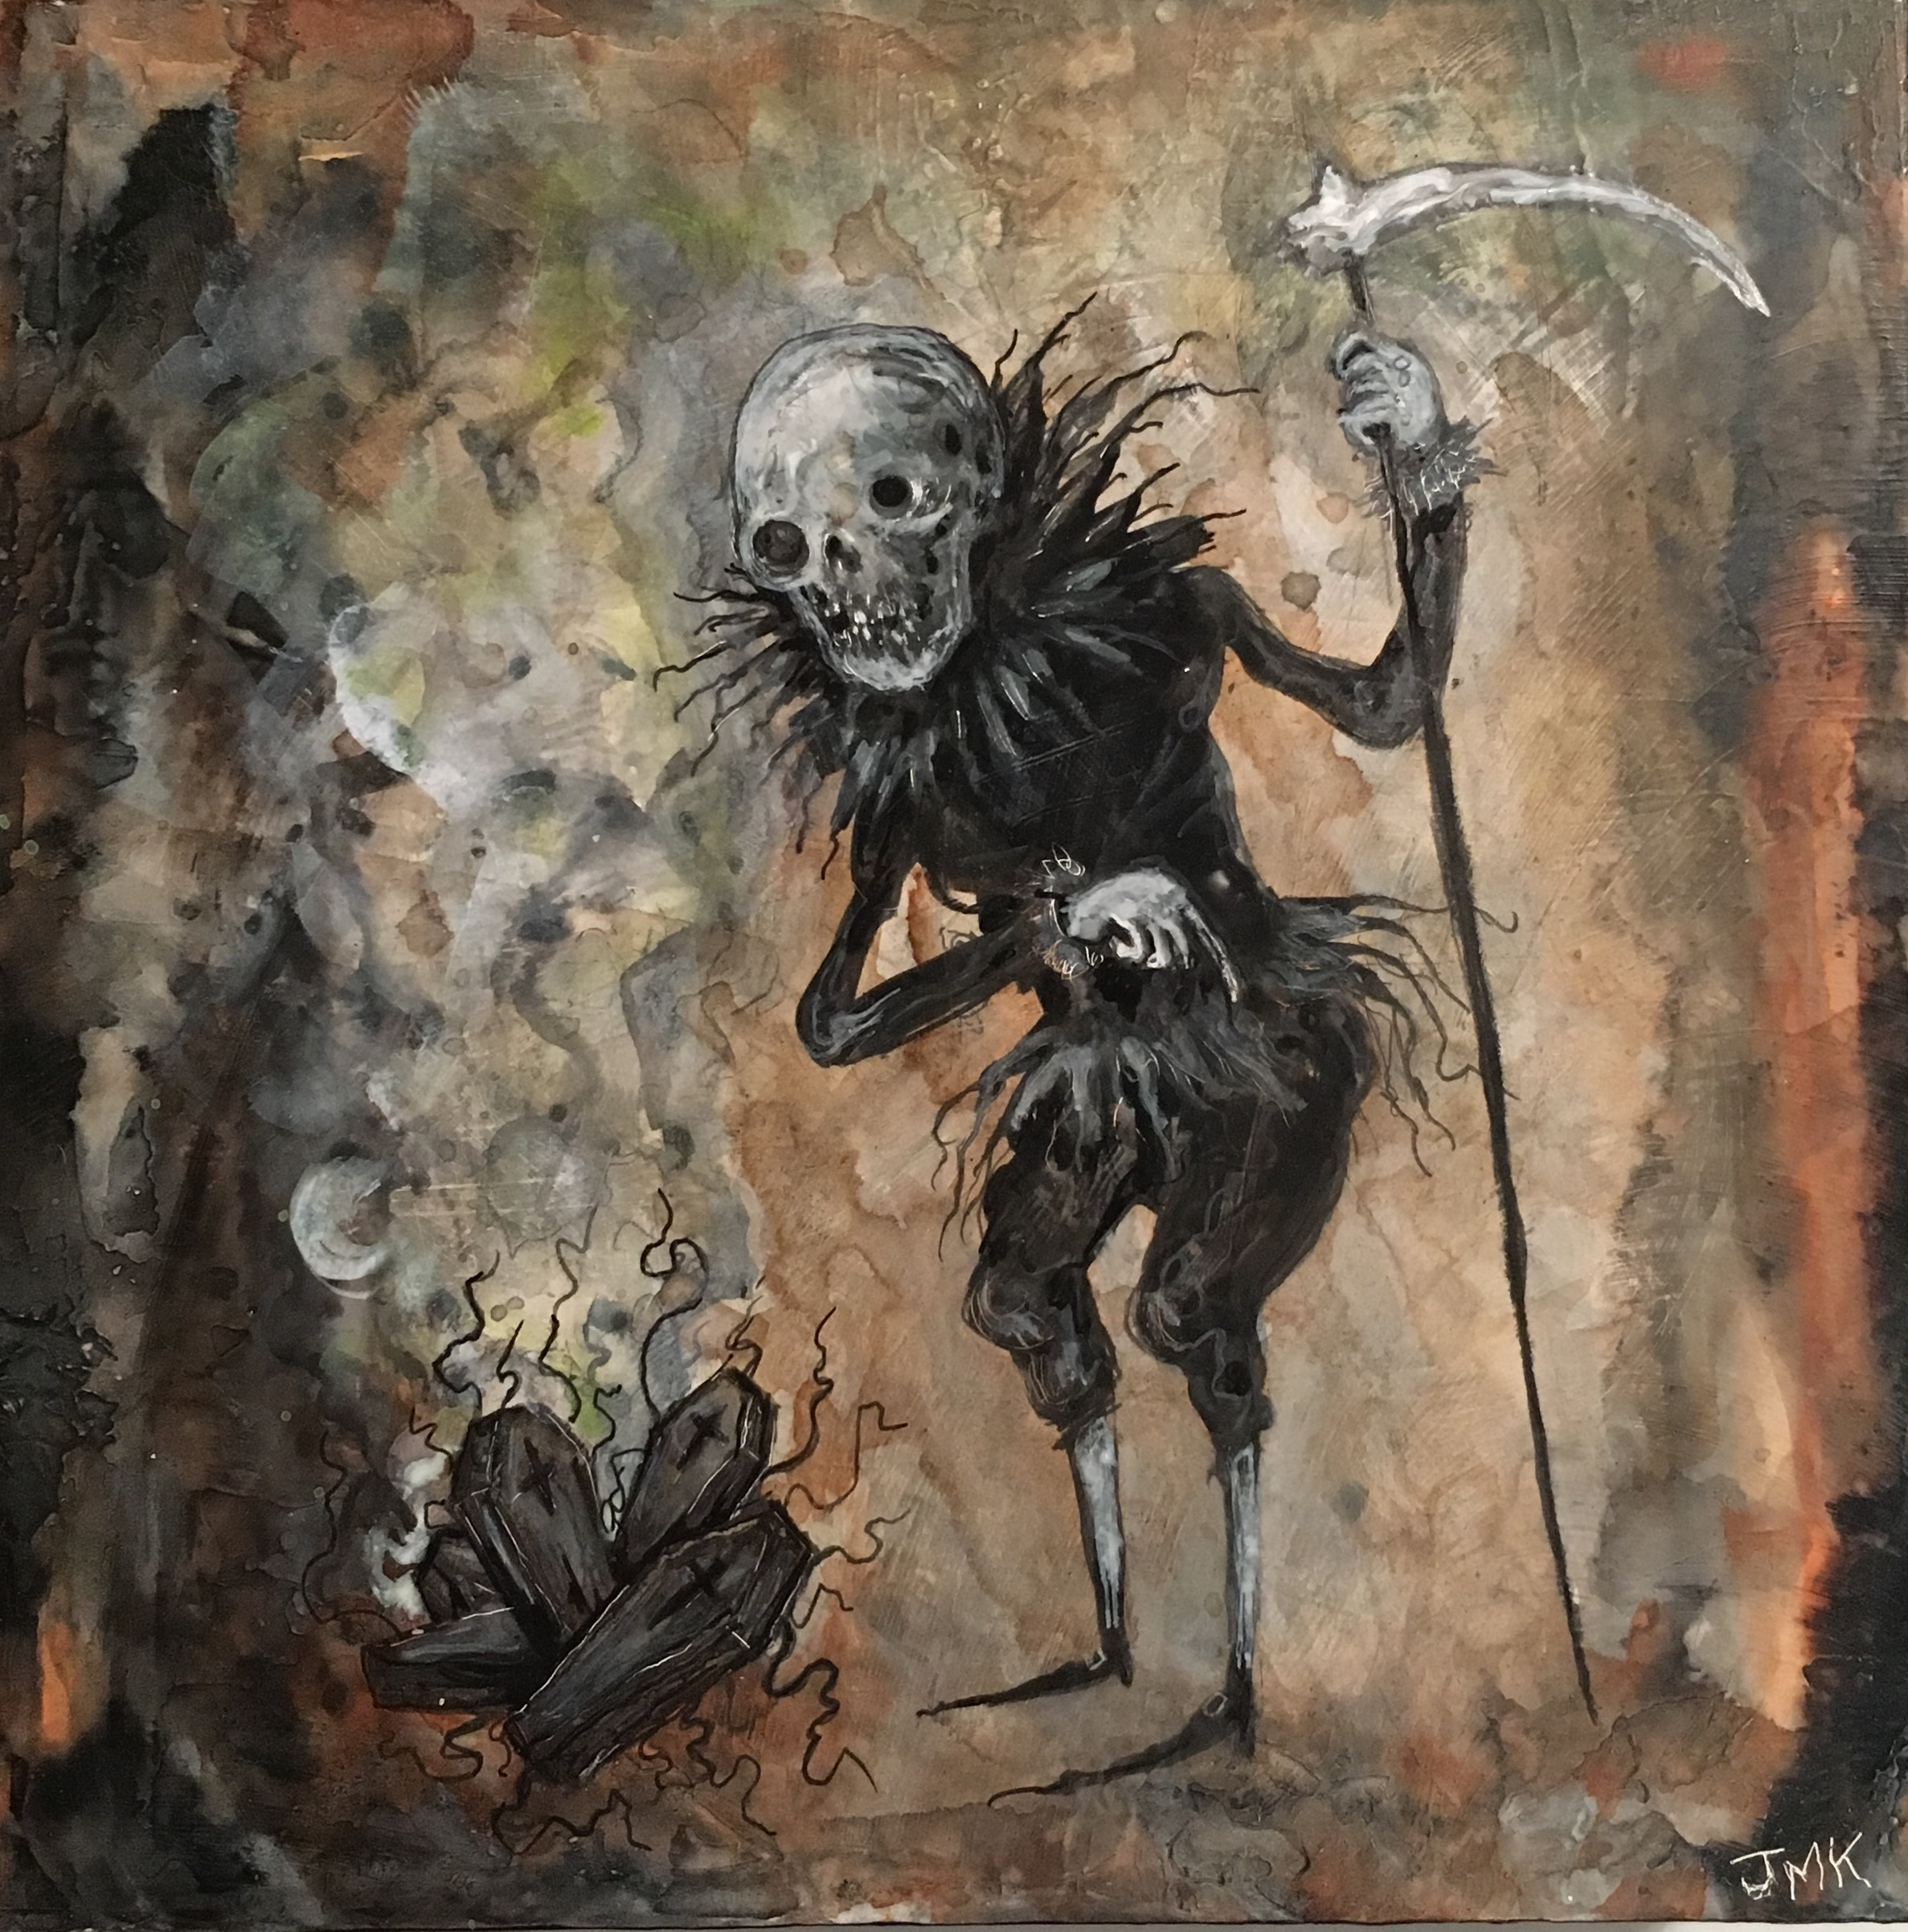 "The Infernal Bard and his prize winning Coffin Worms , acrylic, ink and pencil on wood, 6"" x 6"", $250"